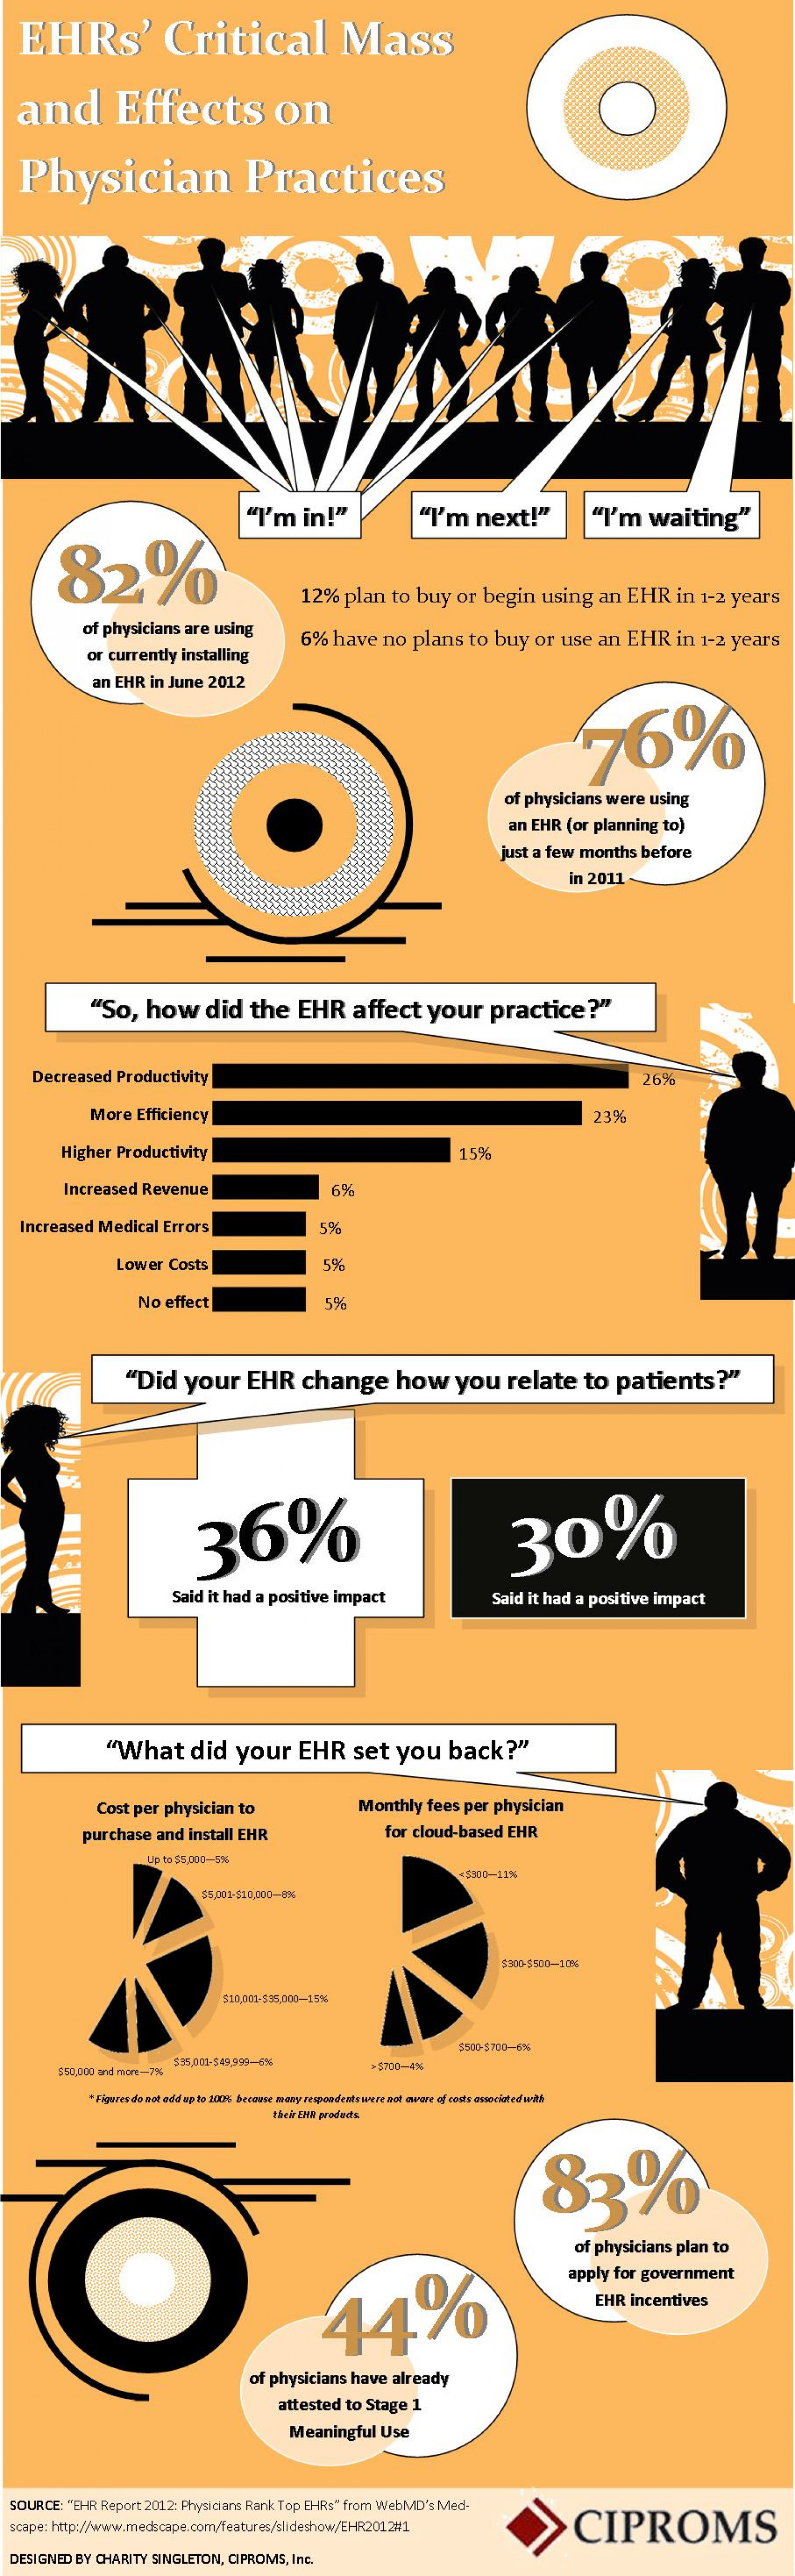 EHRs' Critical Mass and Effects on Physician Practices Infographic